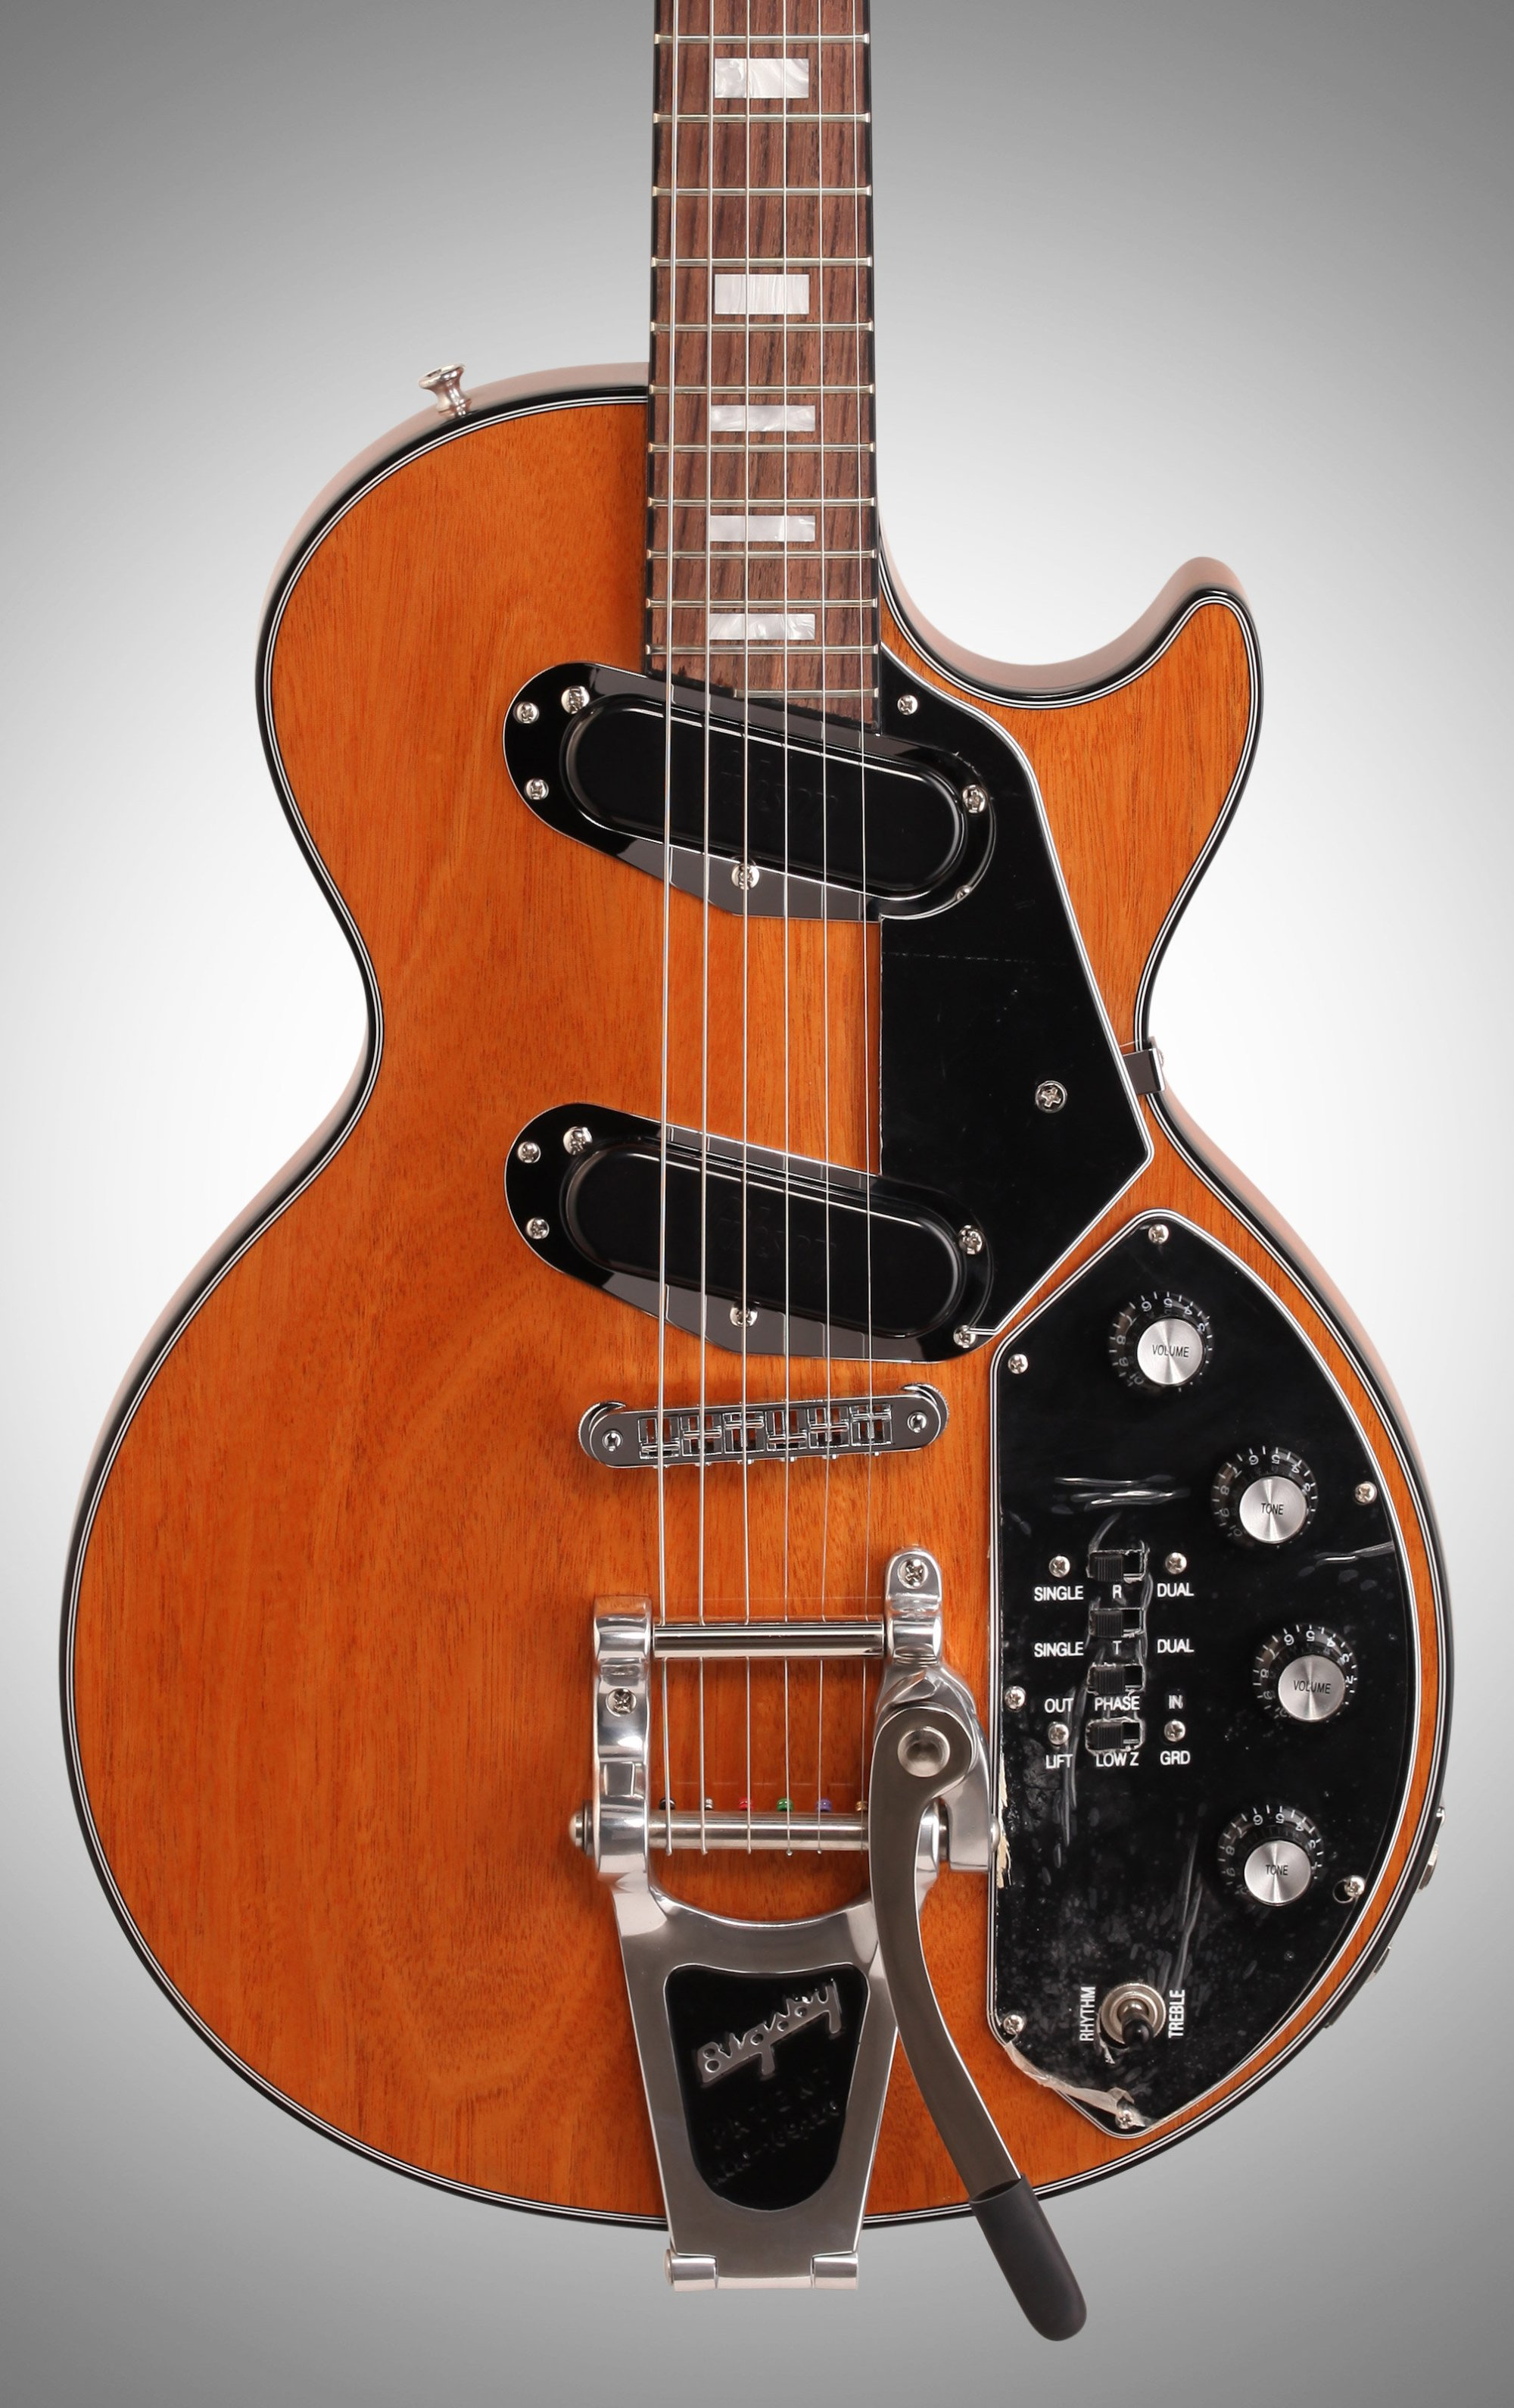 hight resolution of main woody s gibson les paul recording guitar page les paul bass gibson les paul recording manual mesa boogie has been enormously popular since arrival